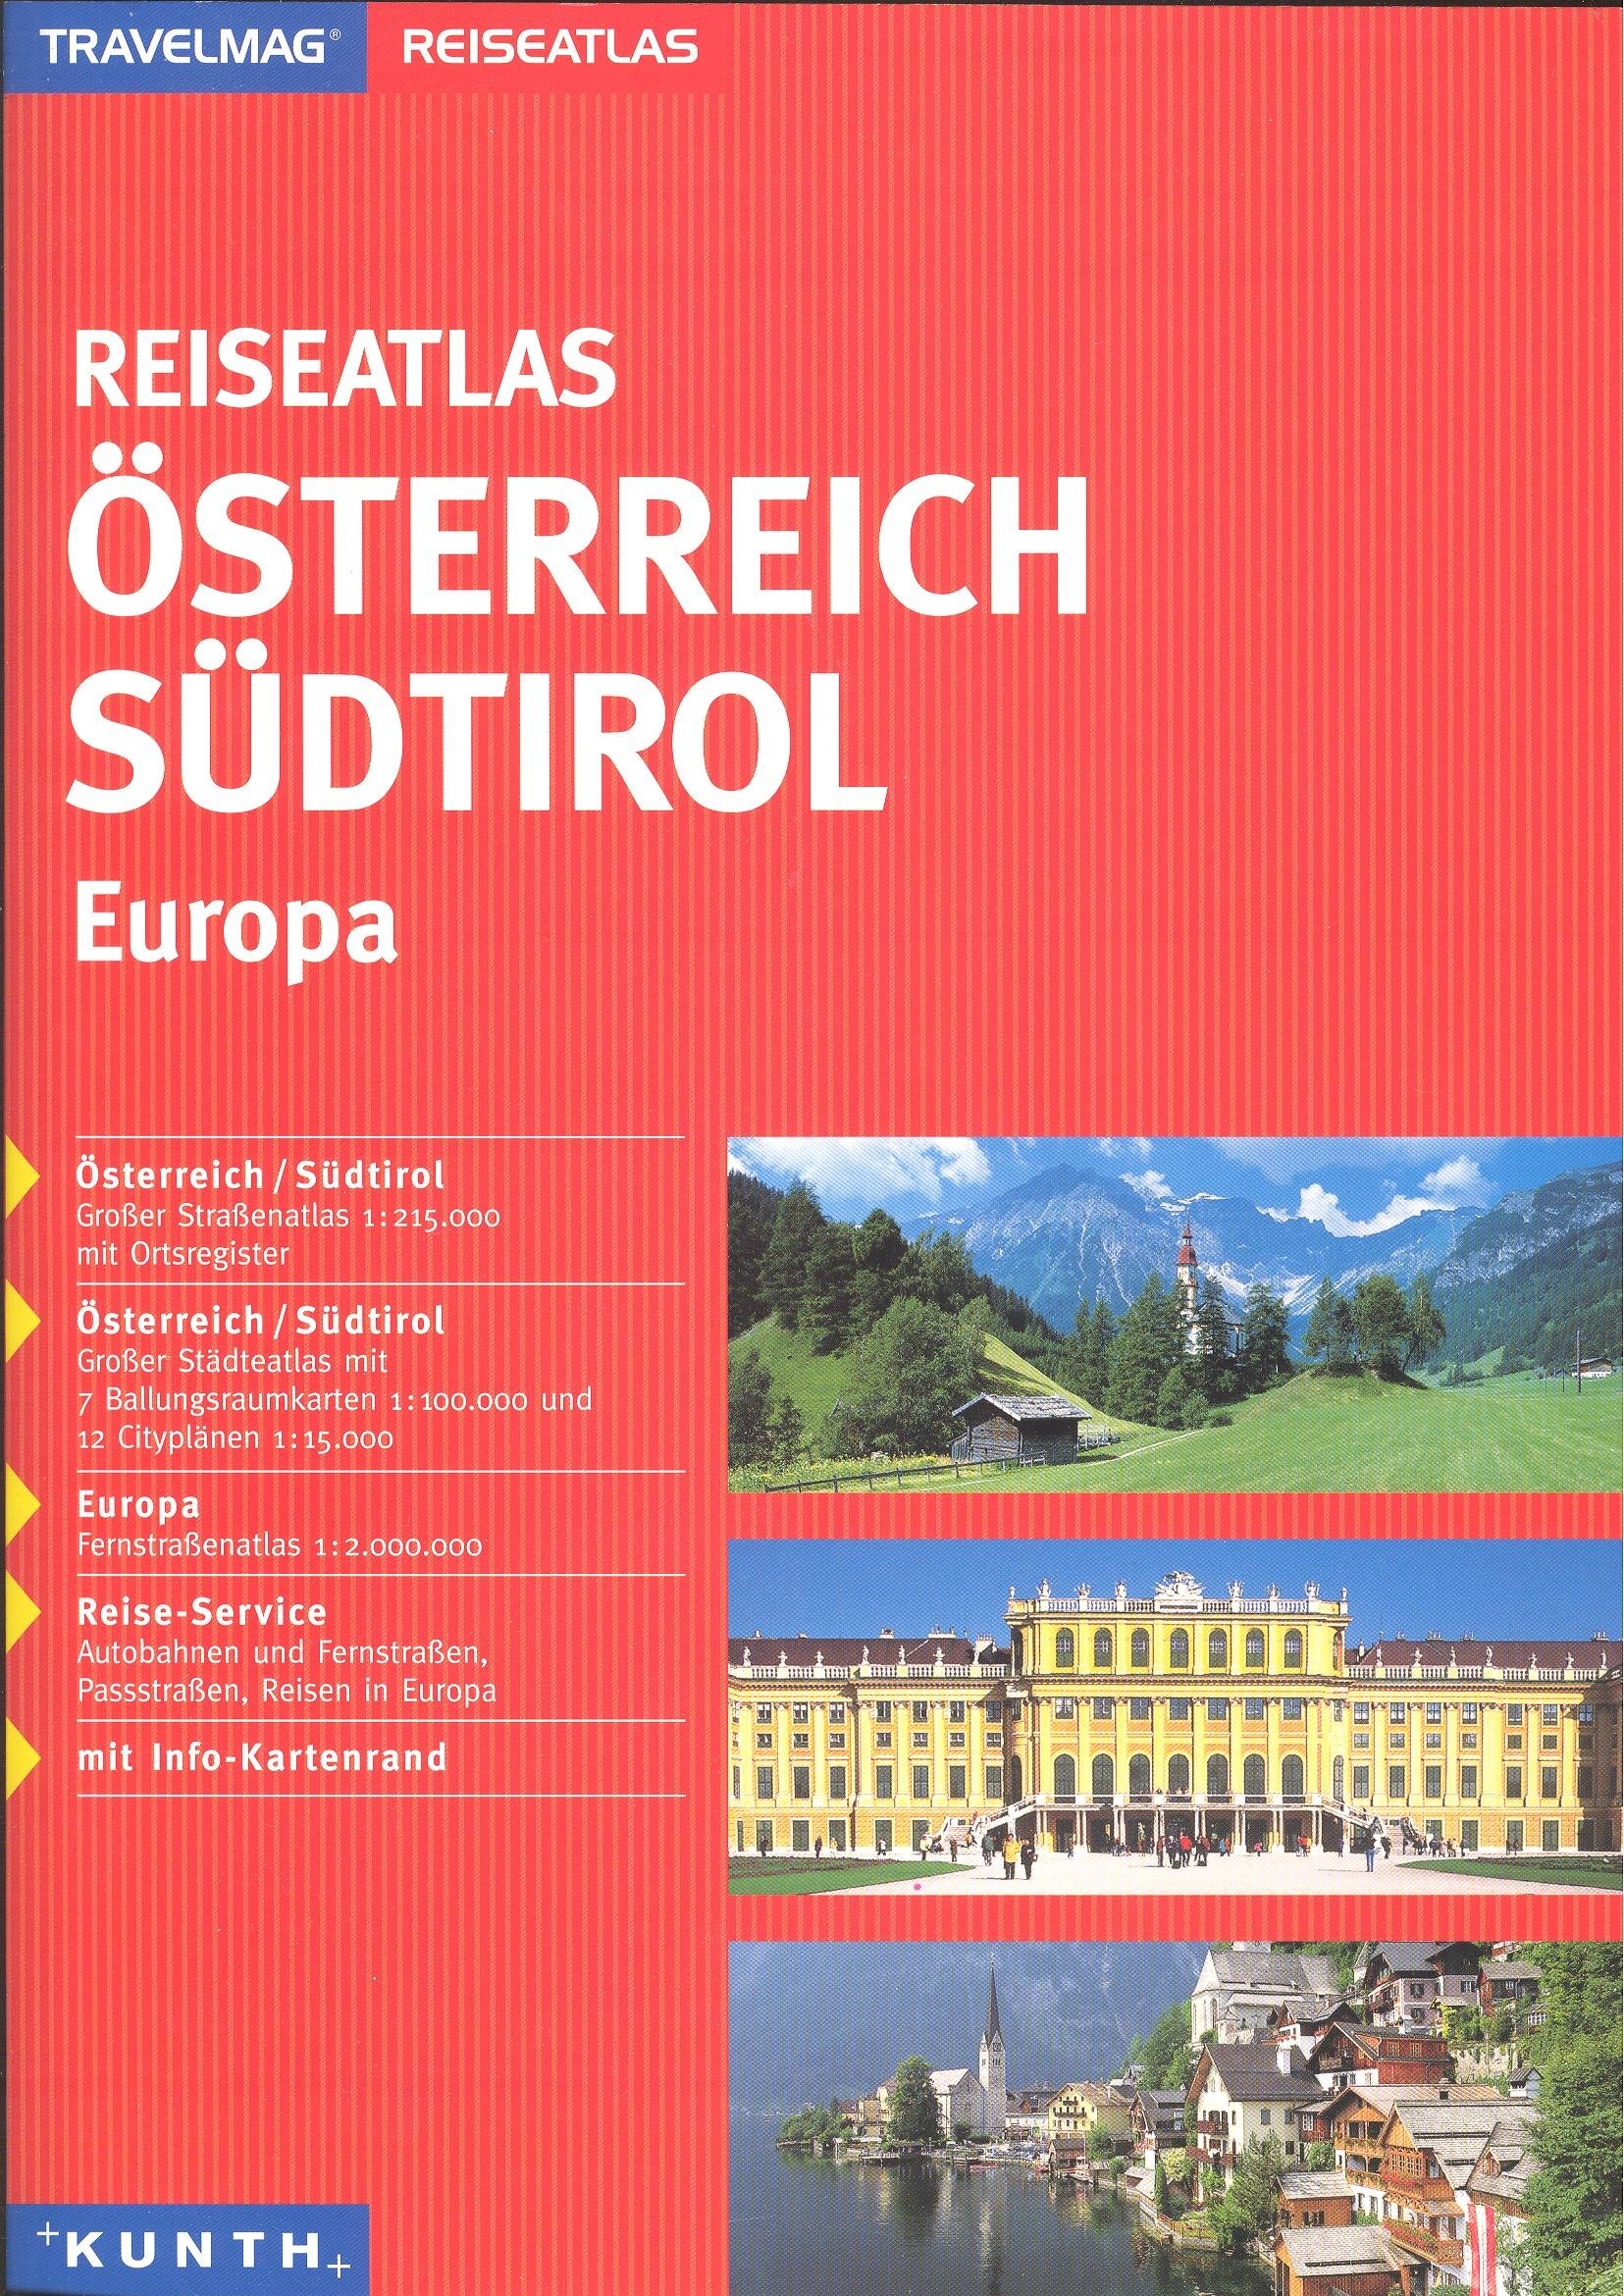 Download Austria & Northern Italy 1:215,000 Touring Atlas with city plans, KUNTH by Kunth Verlag (2007-05-04) ebook